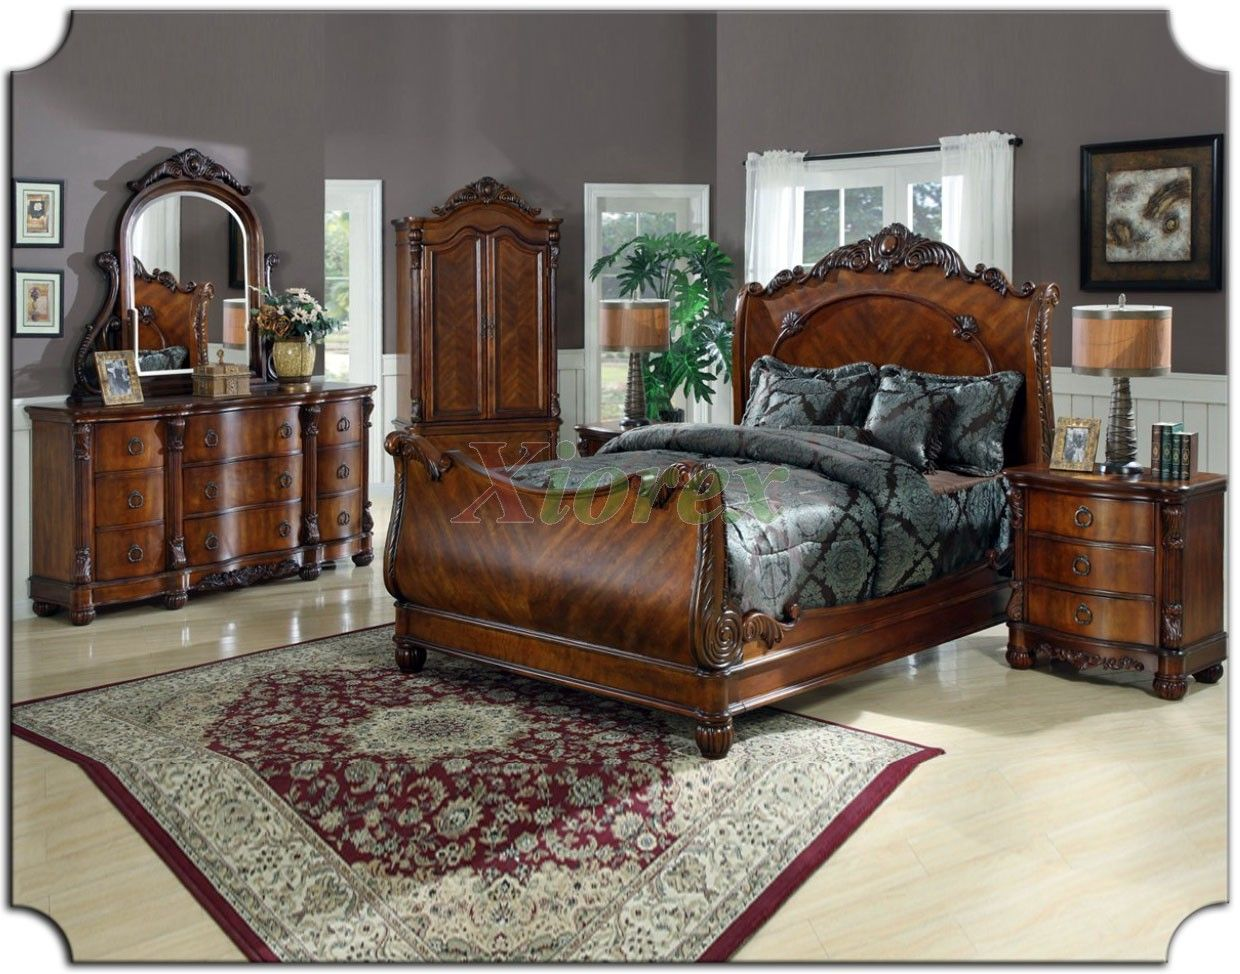 King size sleigh bedroom sets sleigh bedroom - King size sleigh bed bedroom set ...